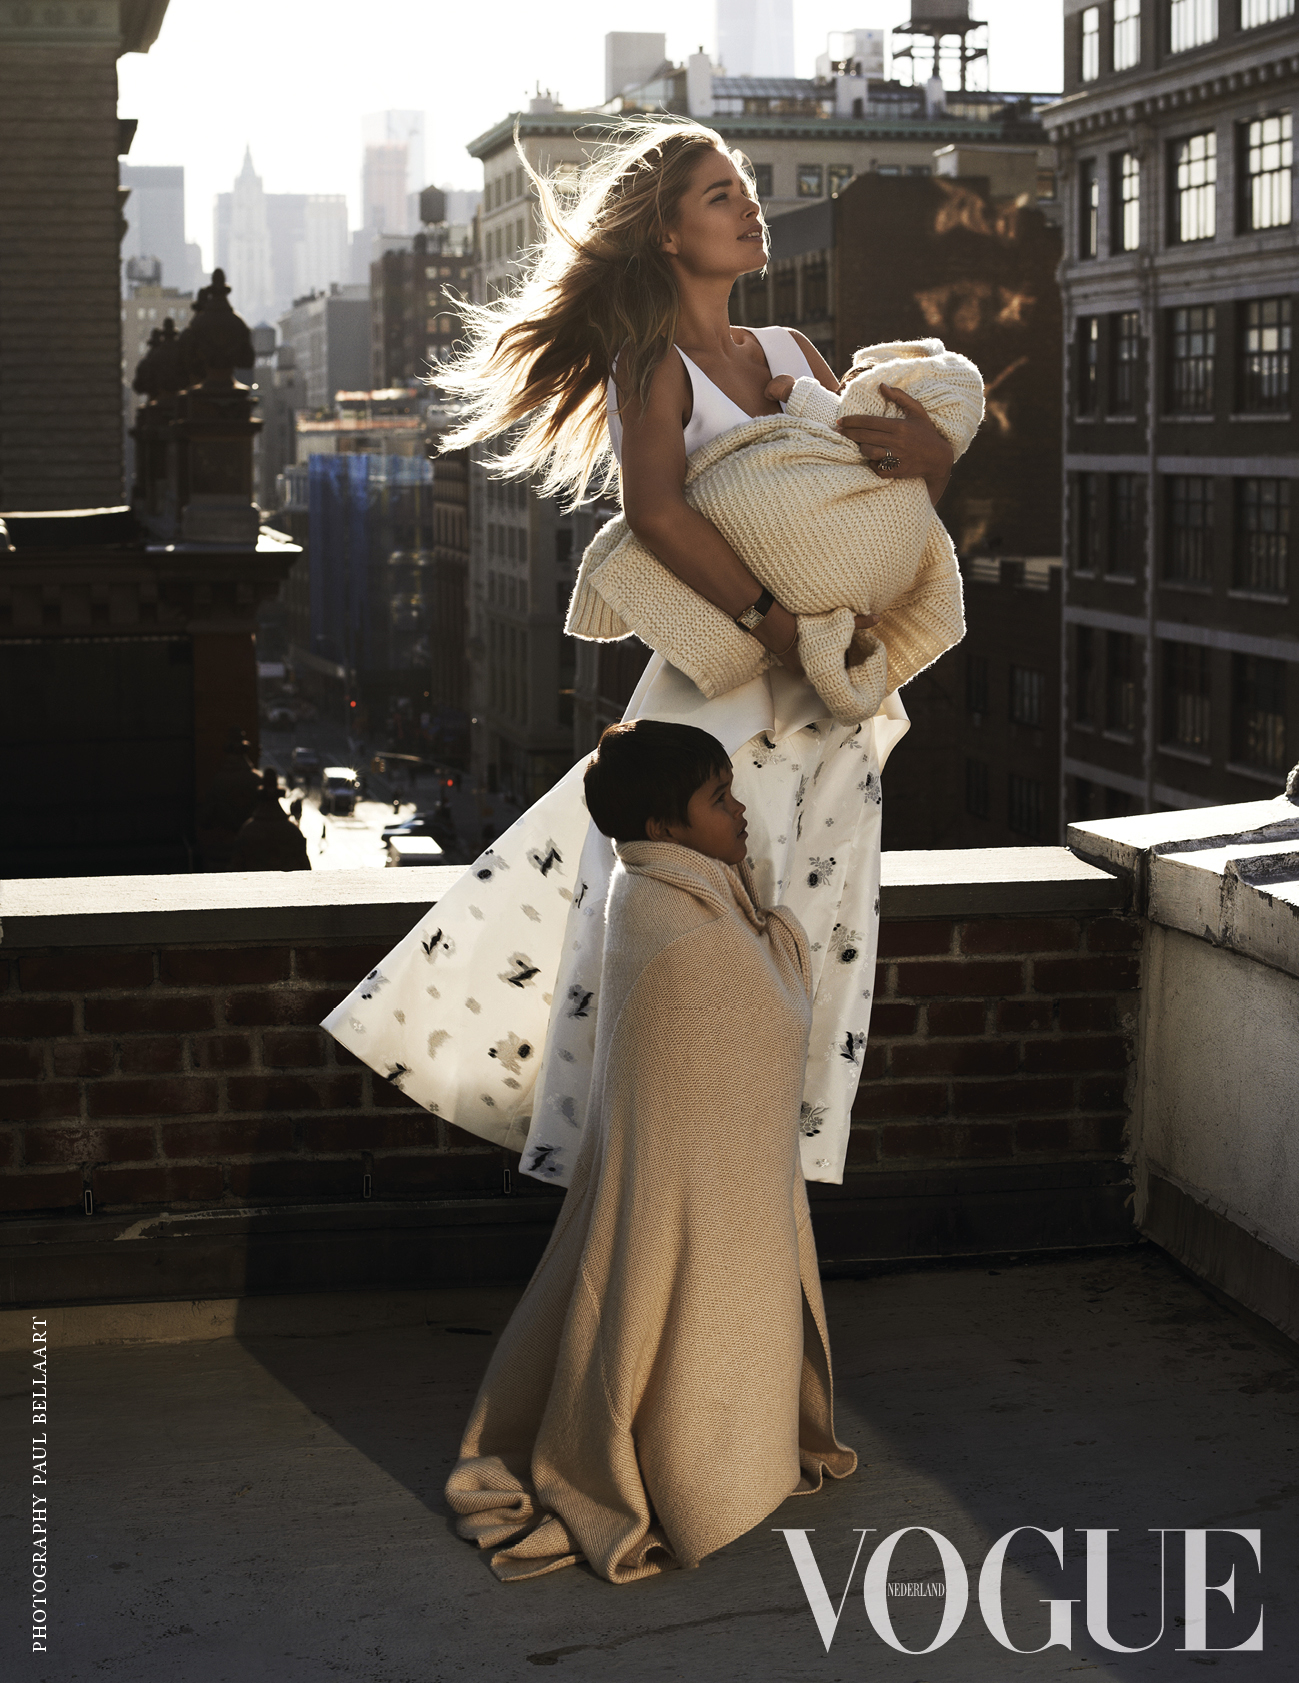 Doutzen-Kroes-_-Vogue-Nederland-3-